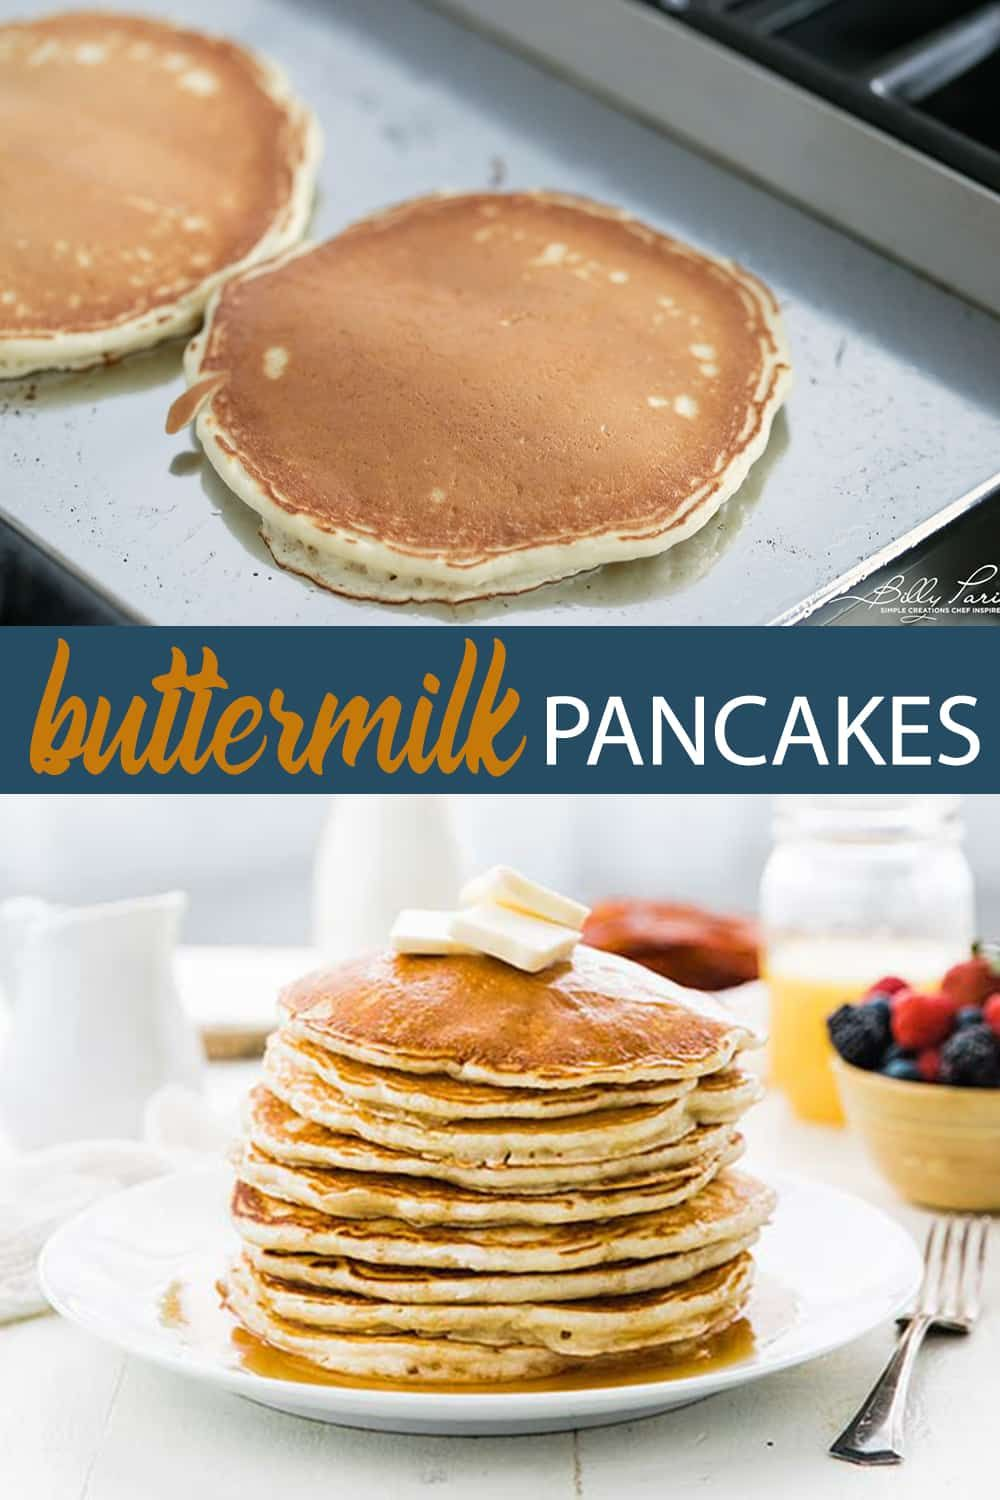 Homemade Buttermilk Pancakes Recipe Chef Billy Parisi Recipe Homemade Buttermilk Pancakes Cheesecake Recipes Easy Homemade Homemade Buttermilk